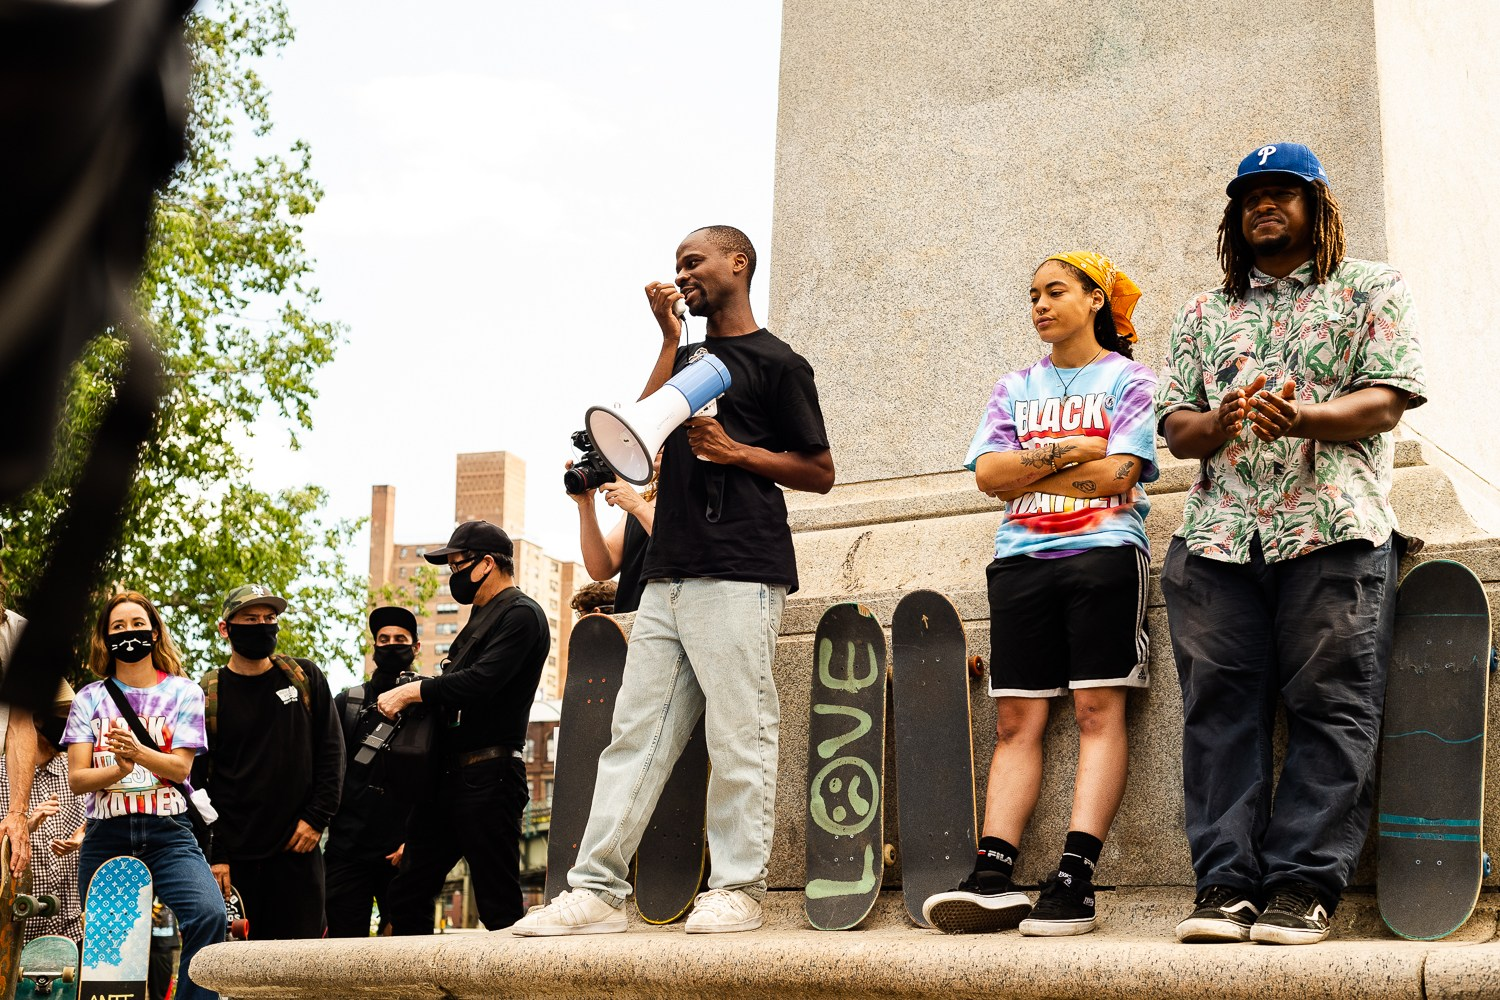 SkateForBlackLives_066